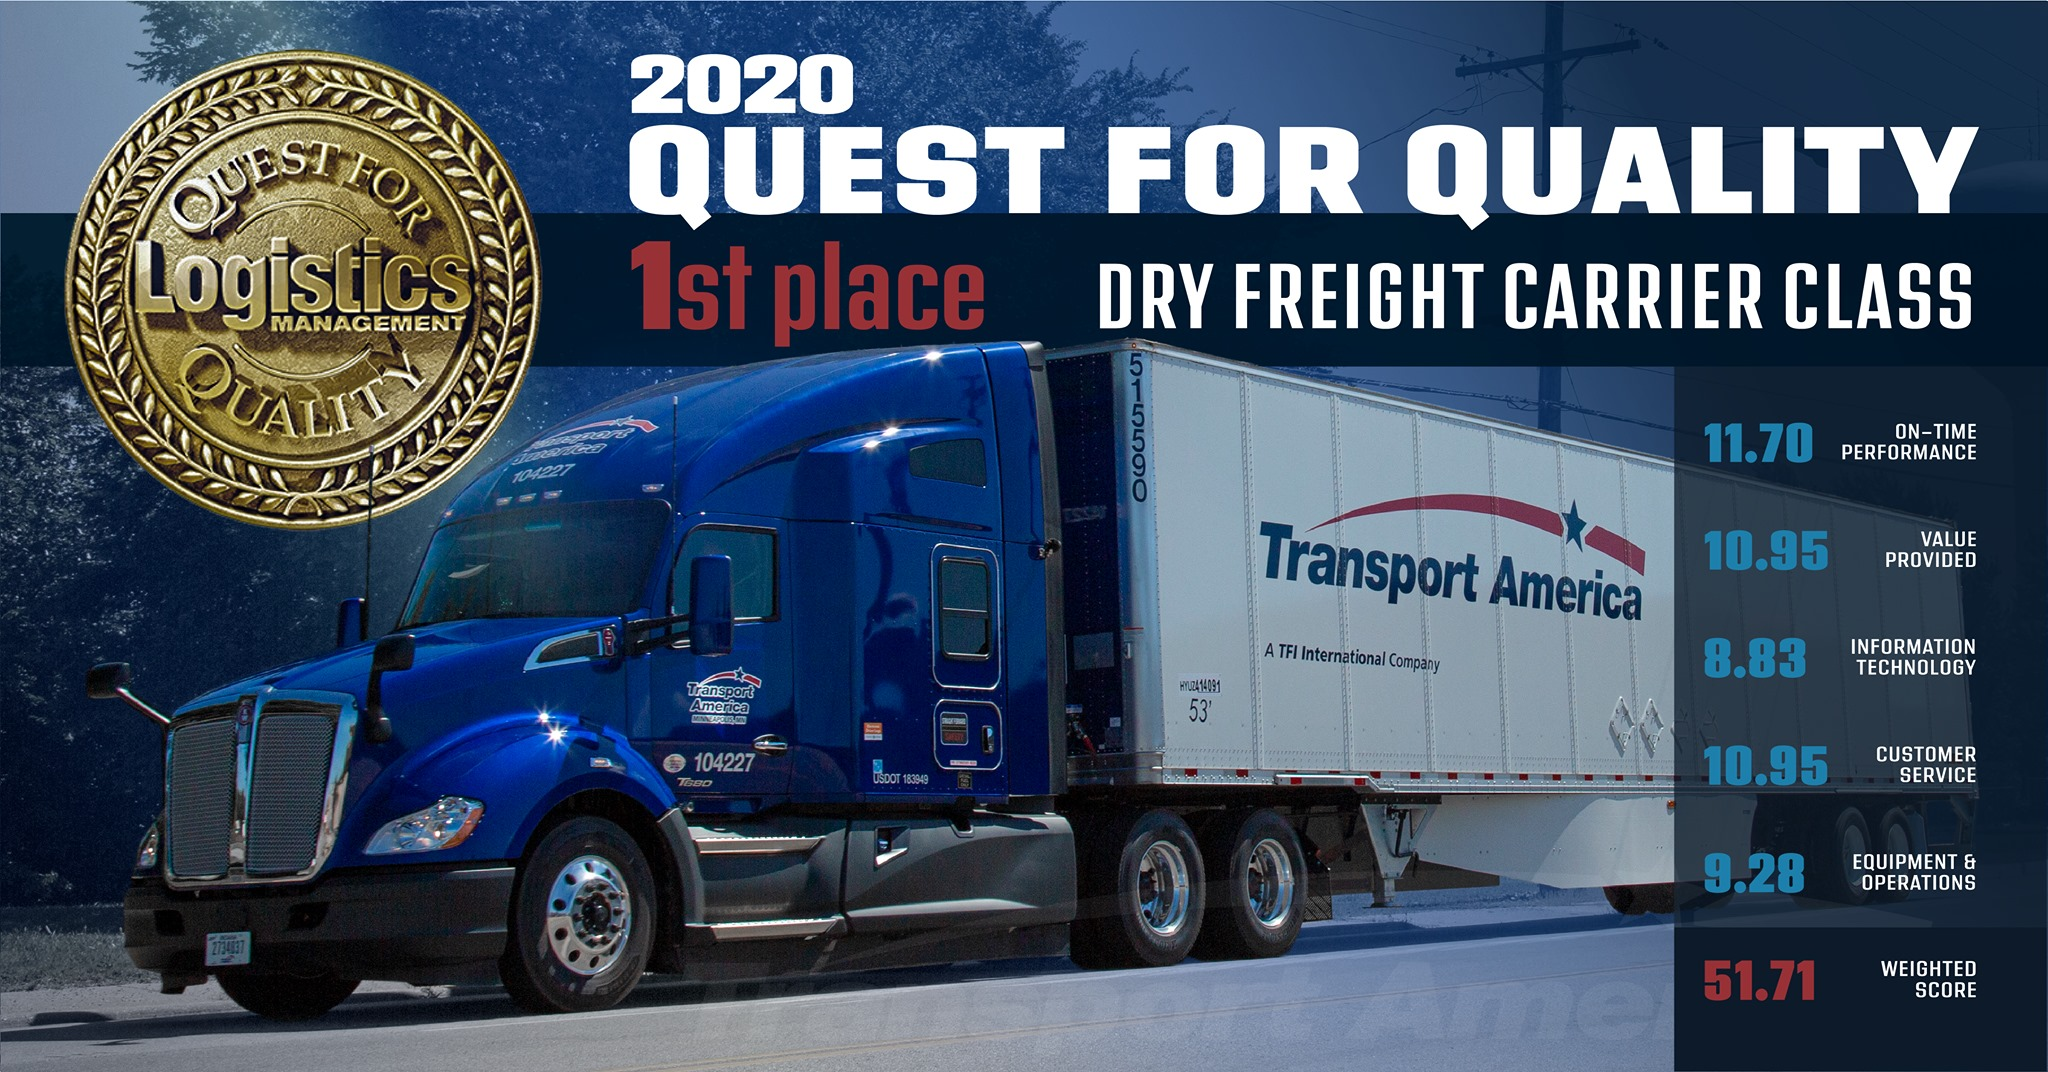 Transport America Quest For Quality Award Winner